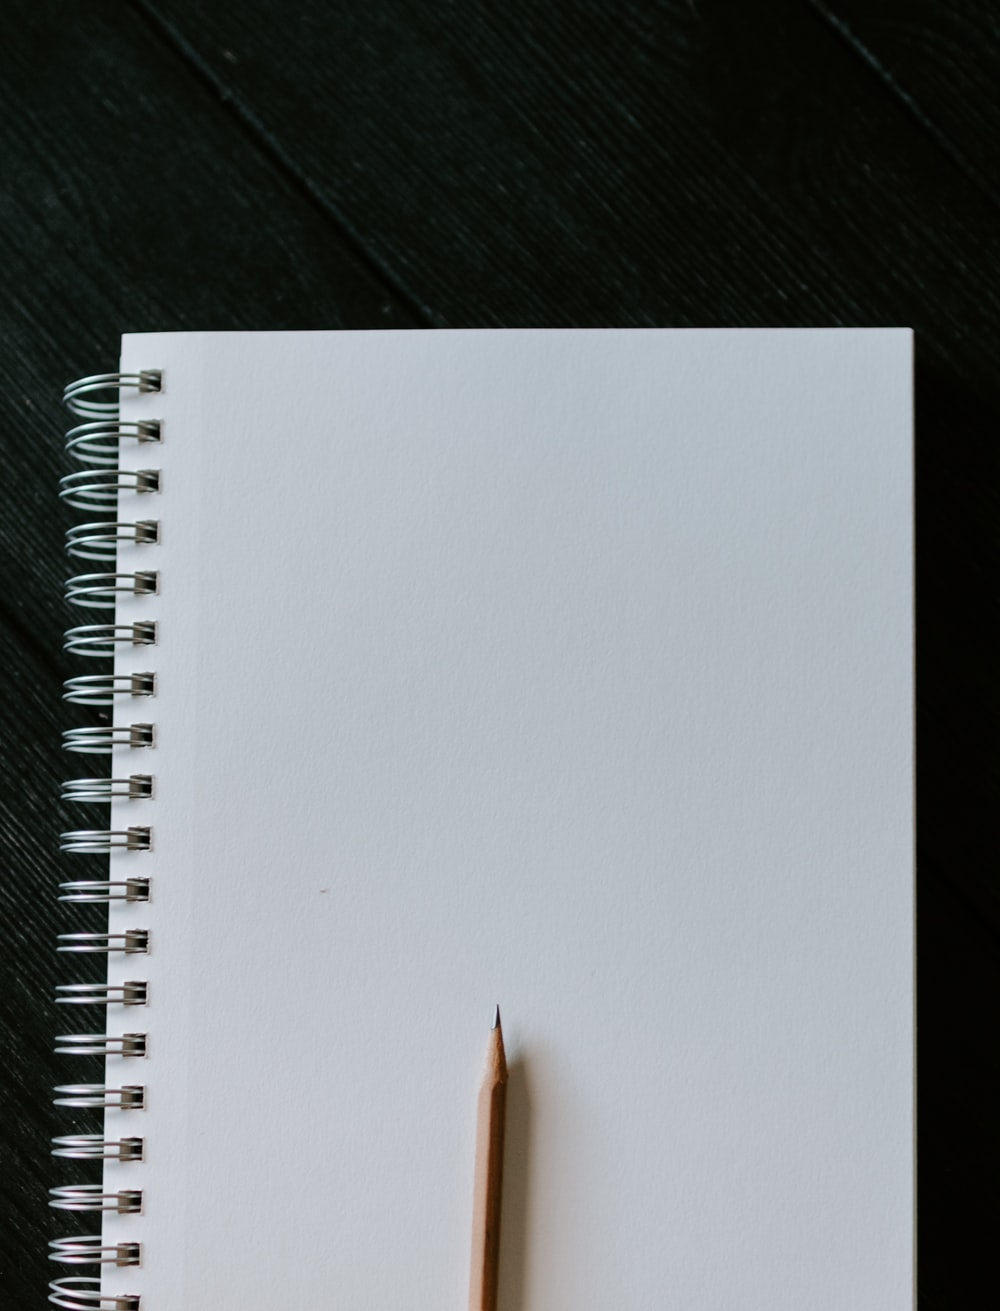 white spiral notebook on black wooden table